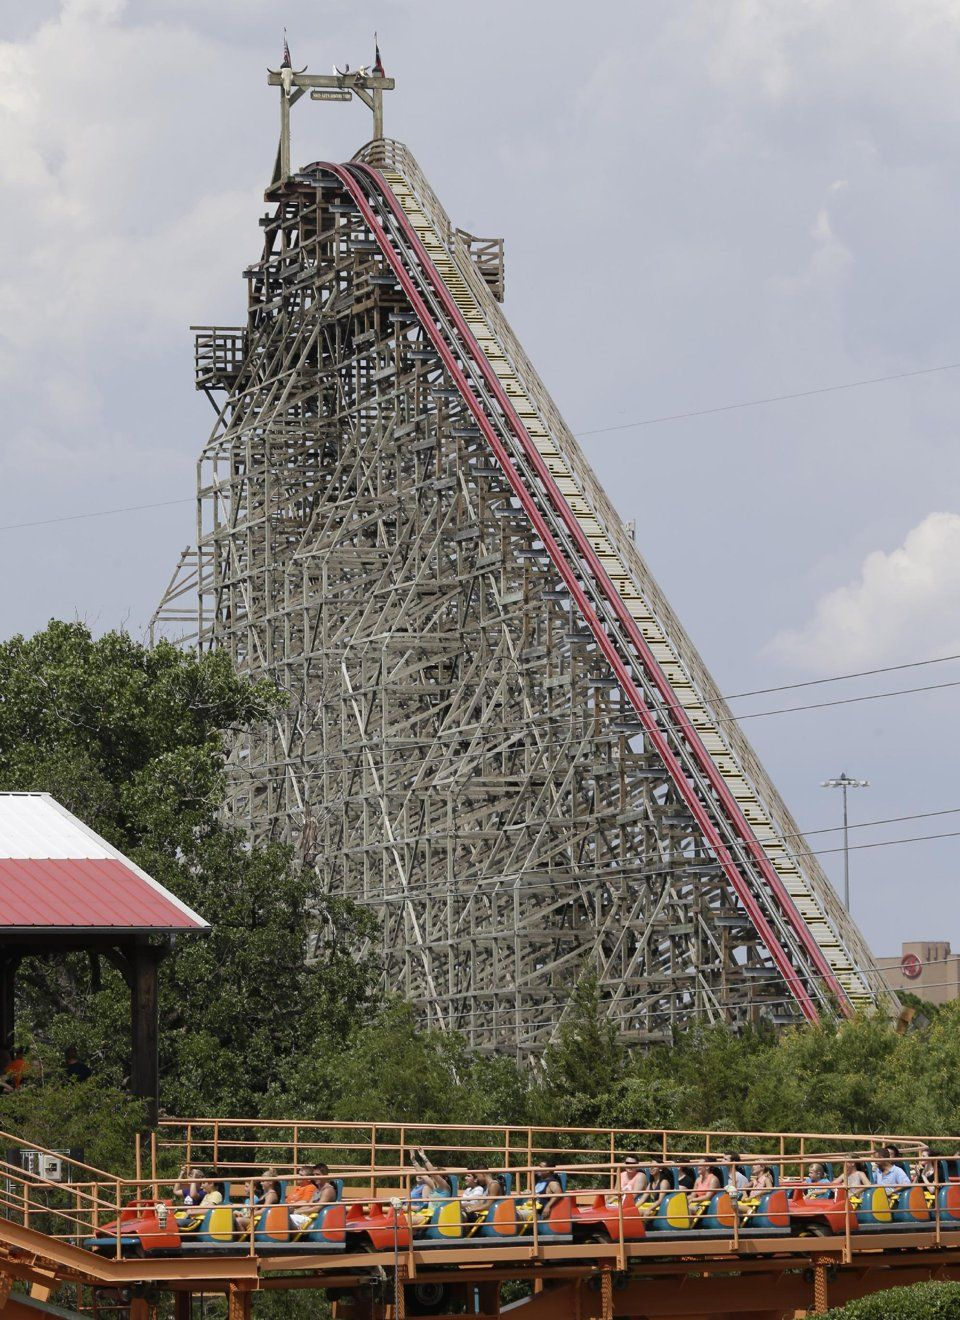 Woman S Fatal Fall From Six Flags Coaster Probed Six Flags Over Texas Six Flags Roller Coaster